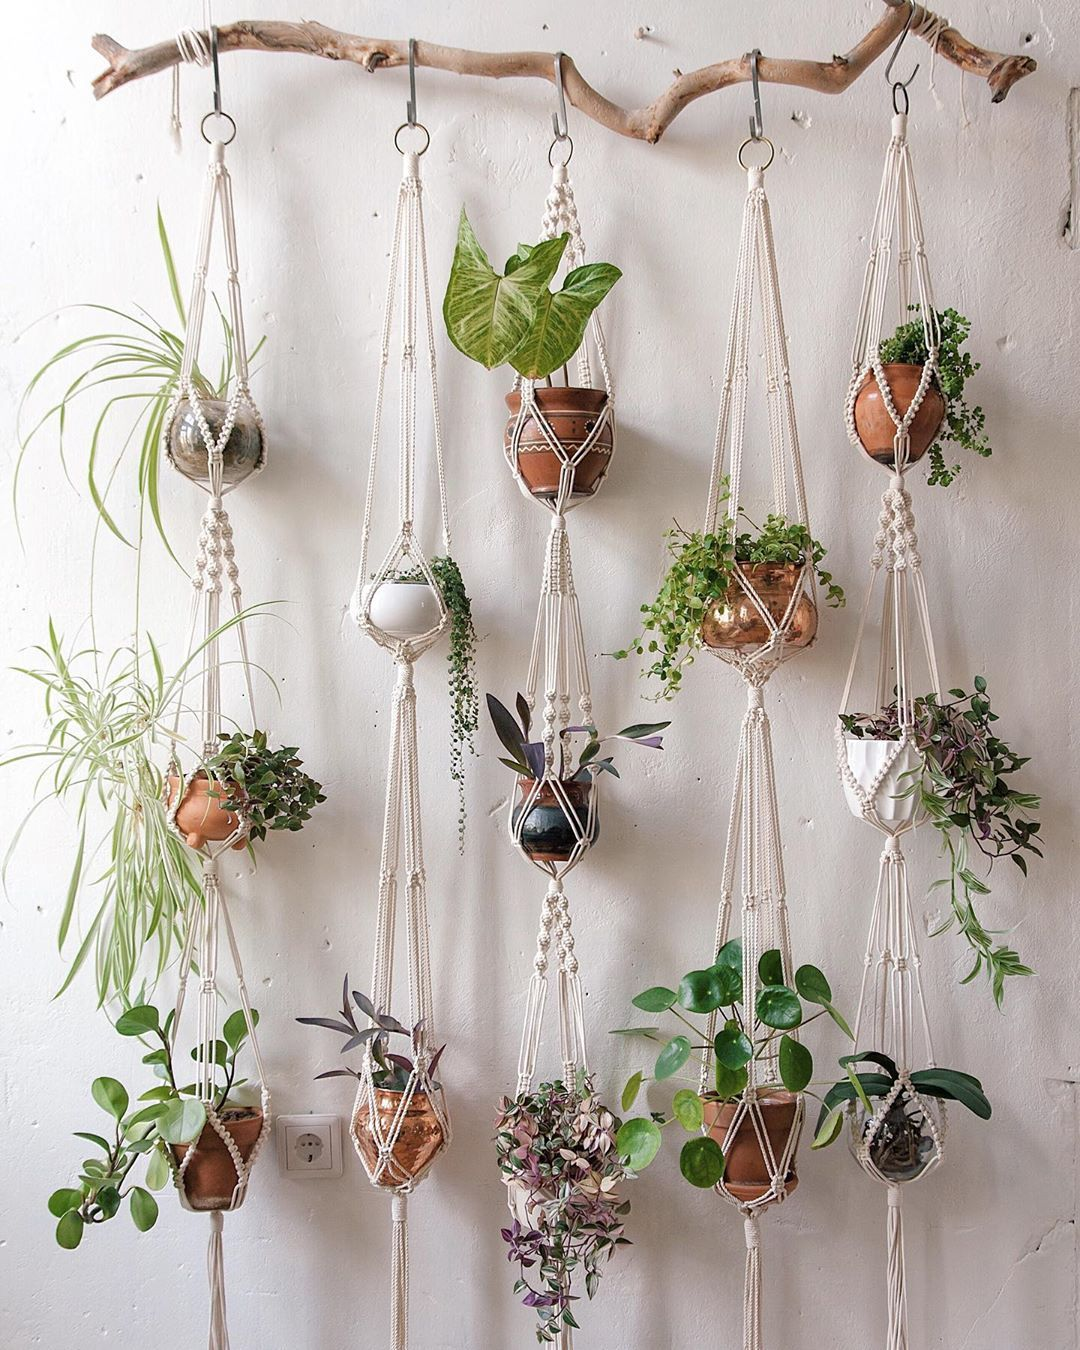 23 Gorgeous Plant Wall Ideas For Small and Big Spa